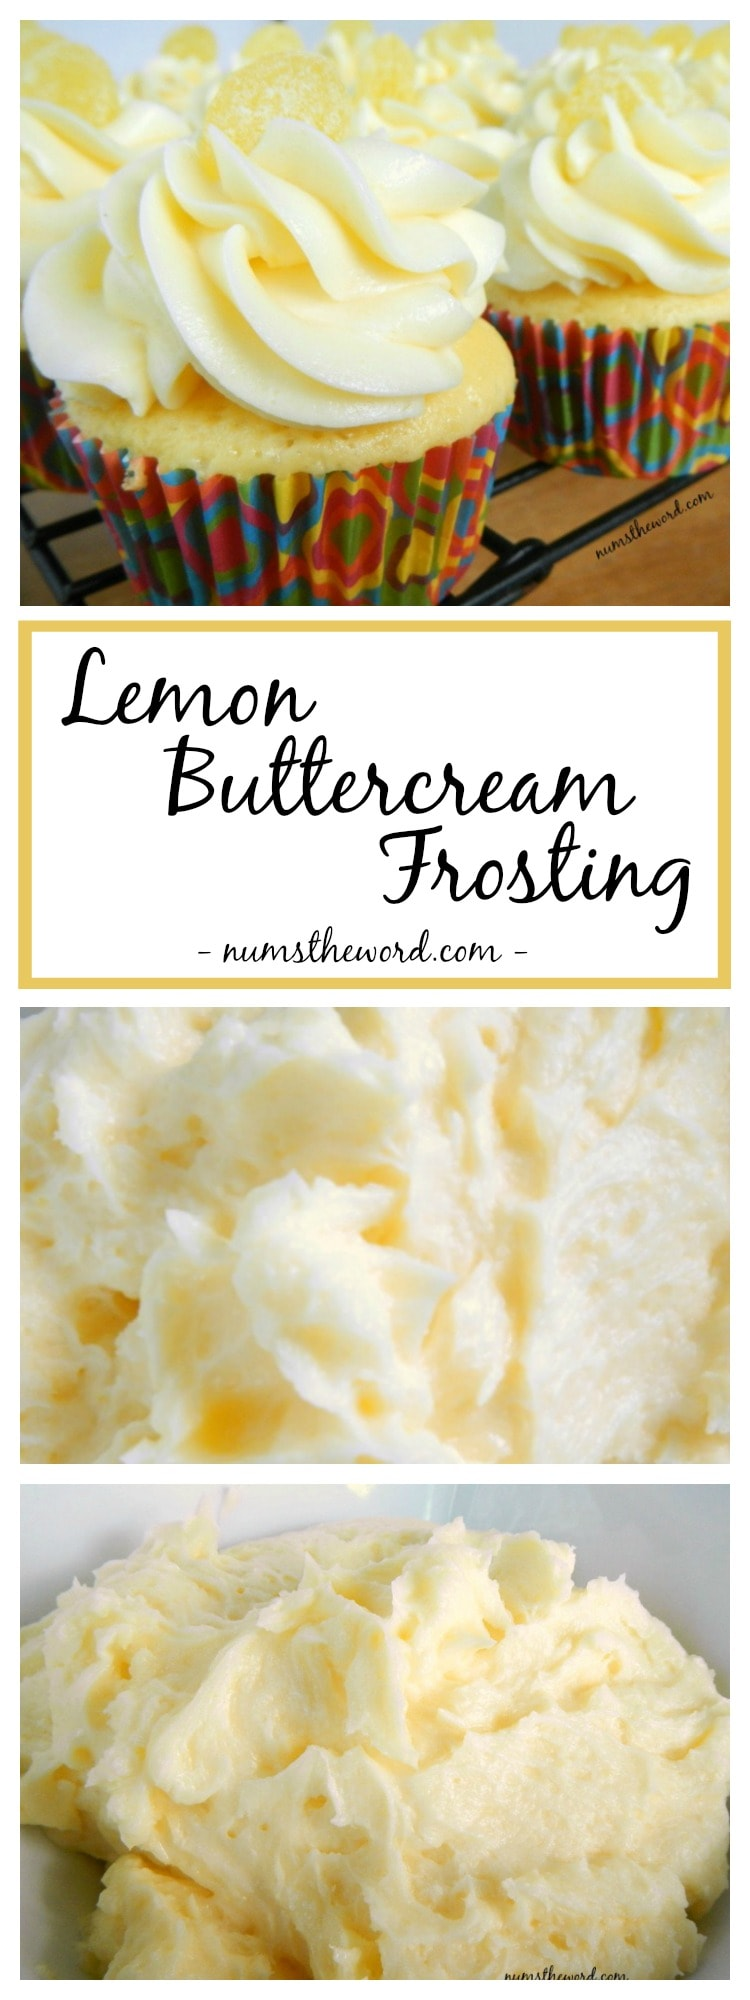 Lemon Buttercream Frosting